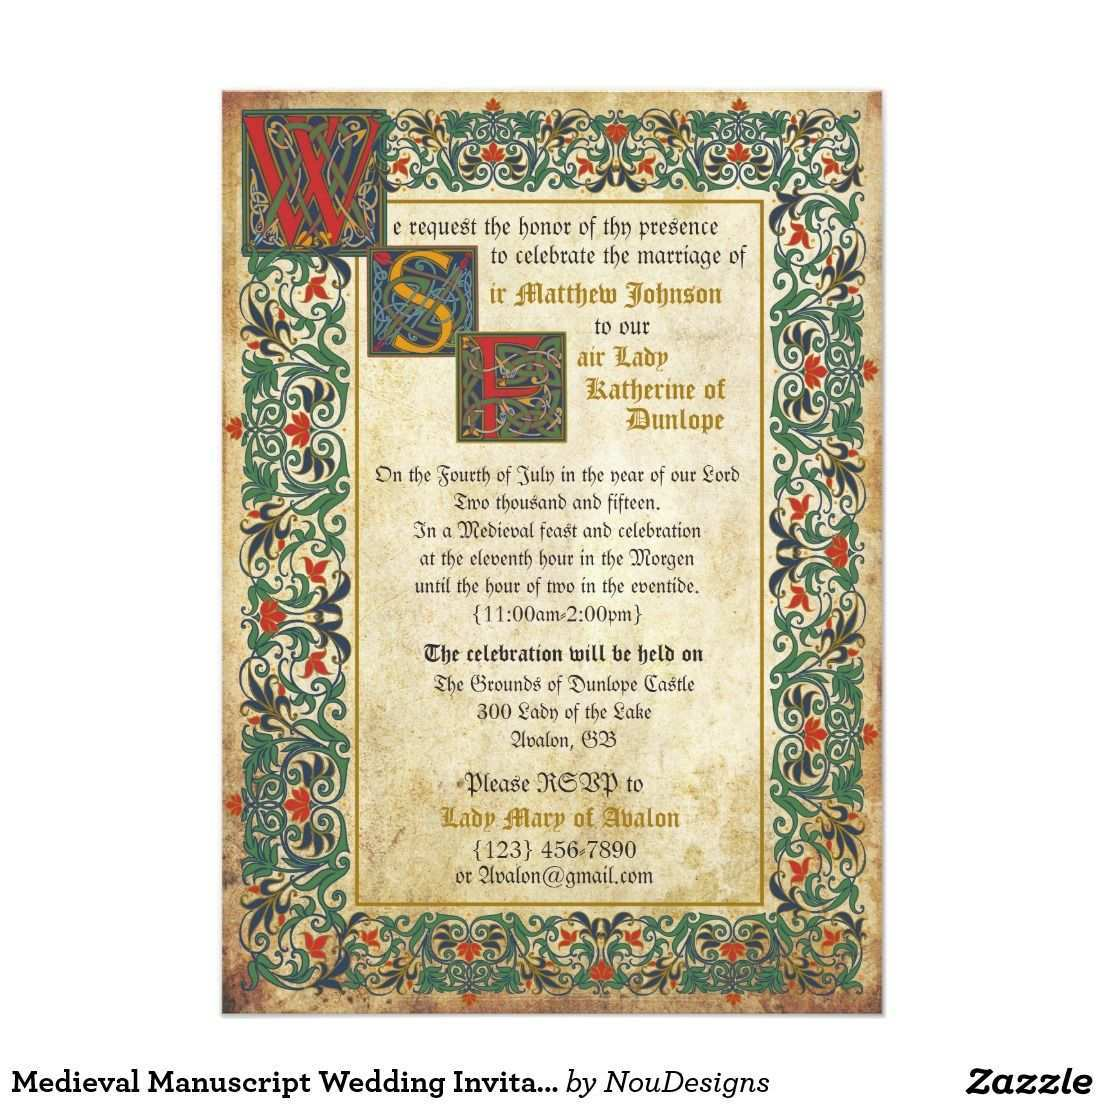 Medieval Manuscript Wedding Invitation Card Zazzle Com Einladungen Einladungskarten Karte Hochzeit